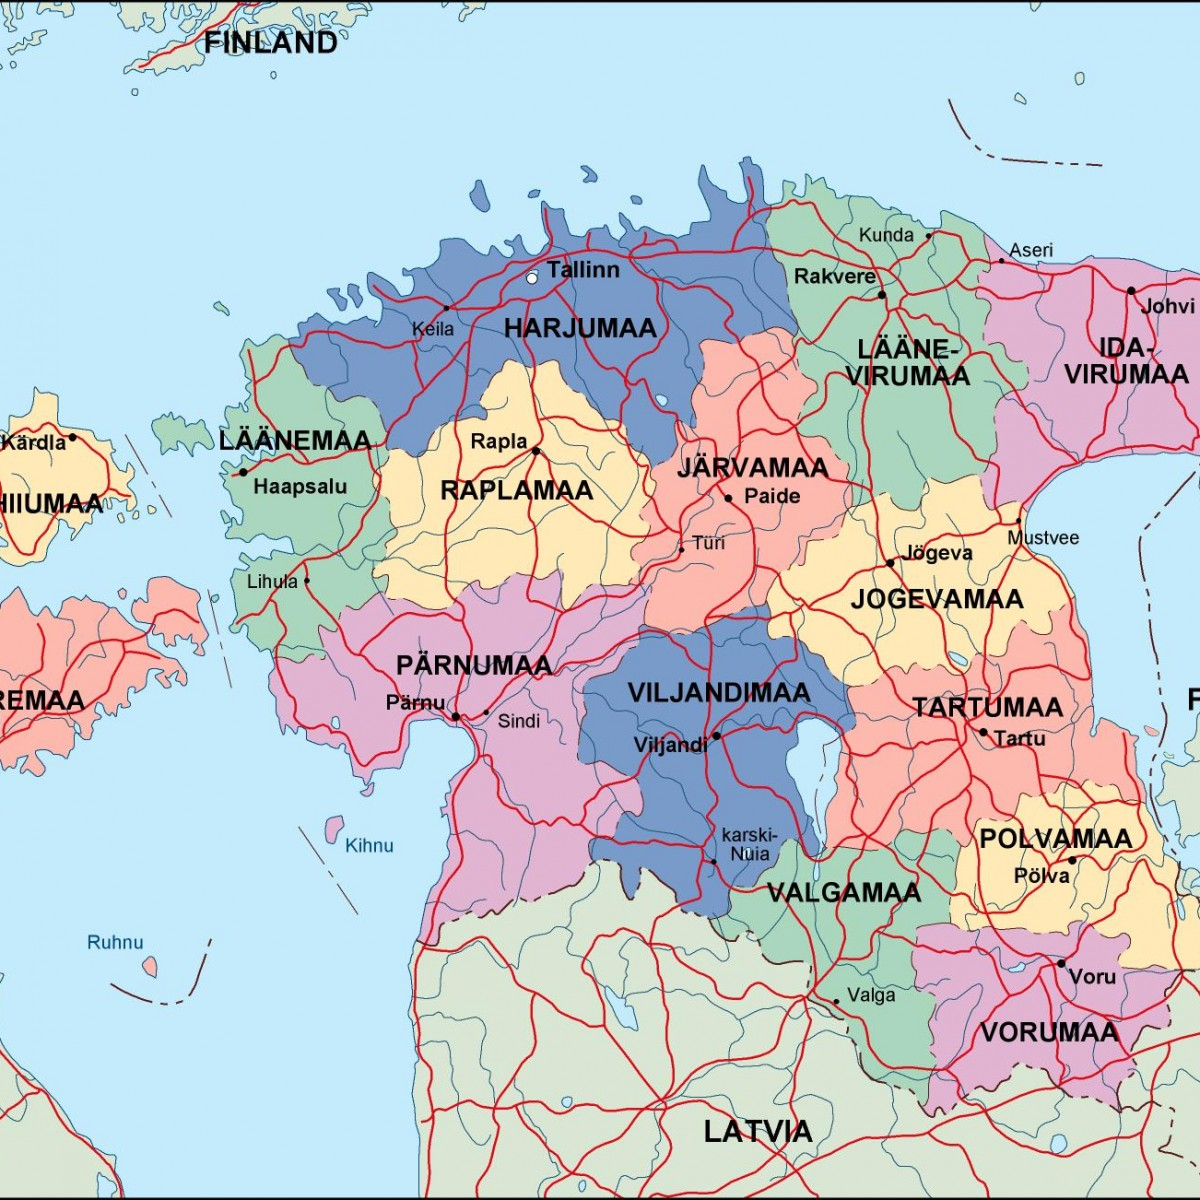 estonia political map Illustrator Vector Eps maps Eps Illustrator